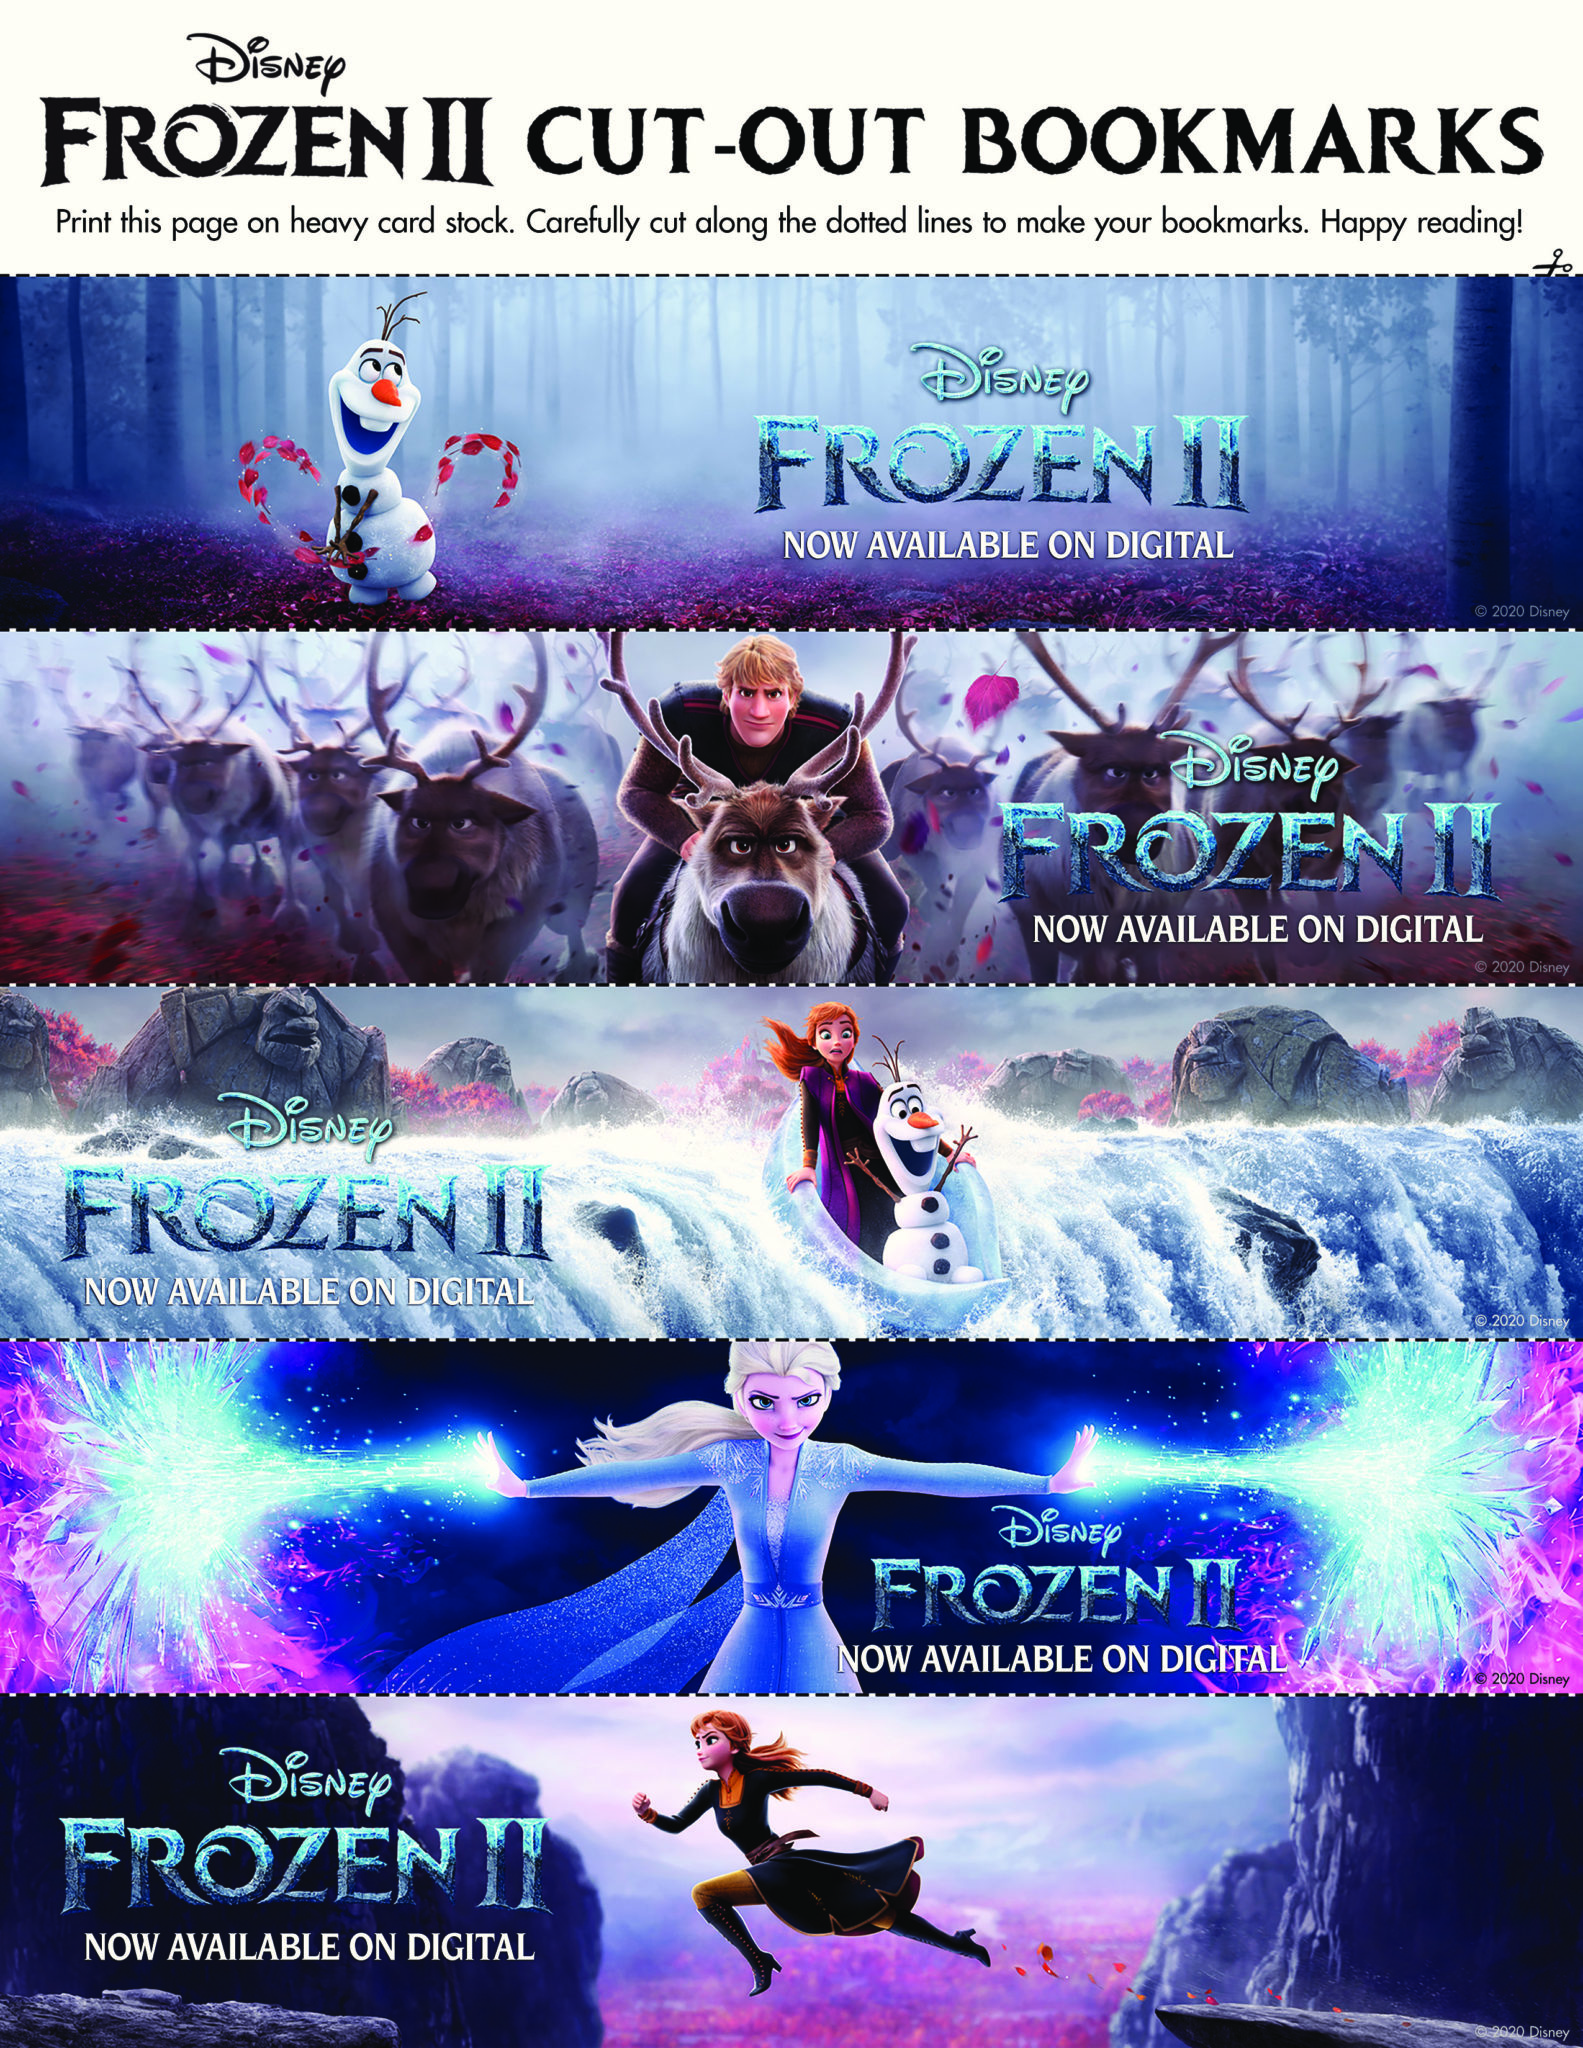 Frozen 2 Bookmarks to print